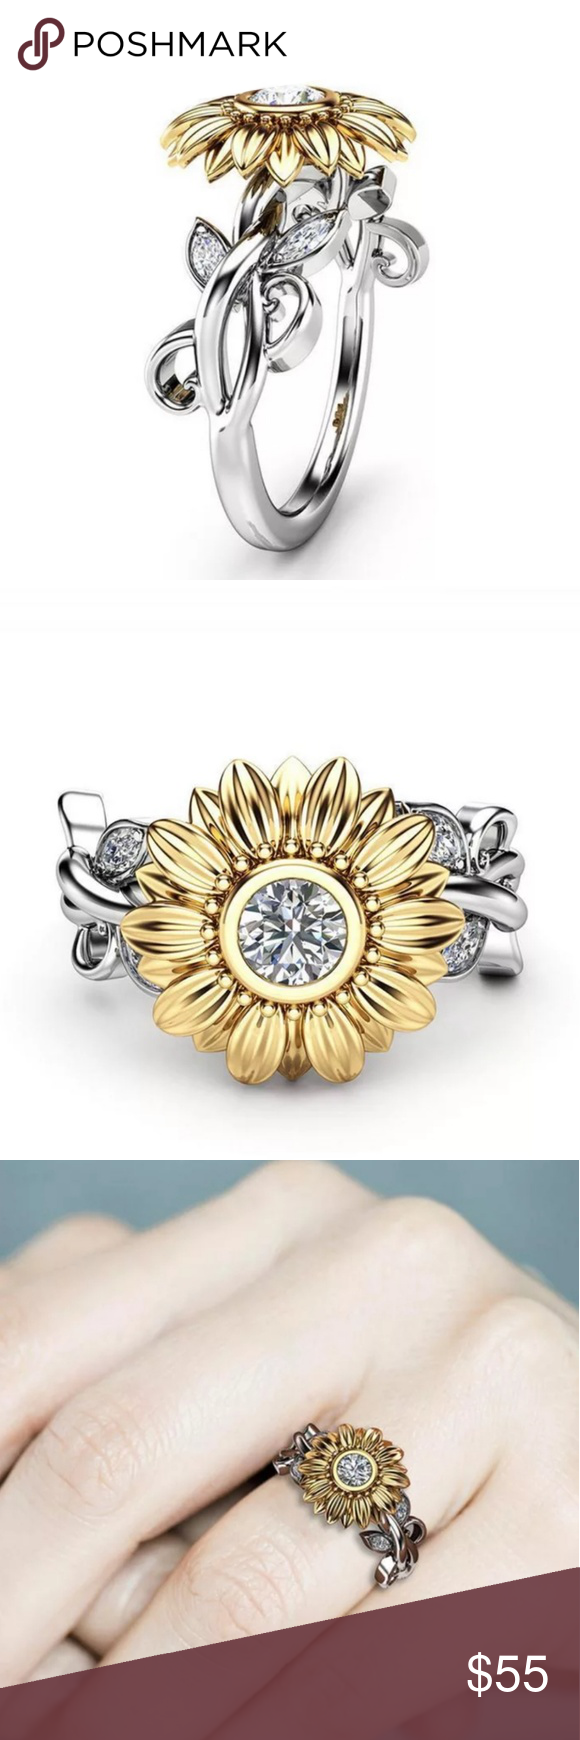 Exquisite Silver Crystal Sunflower Statement Ring